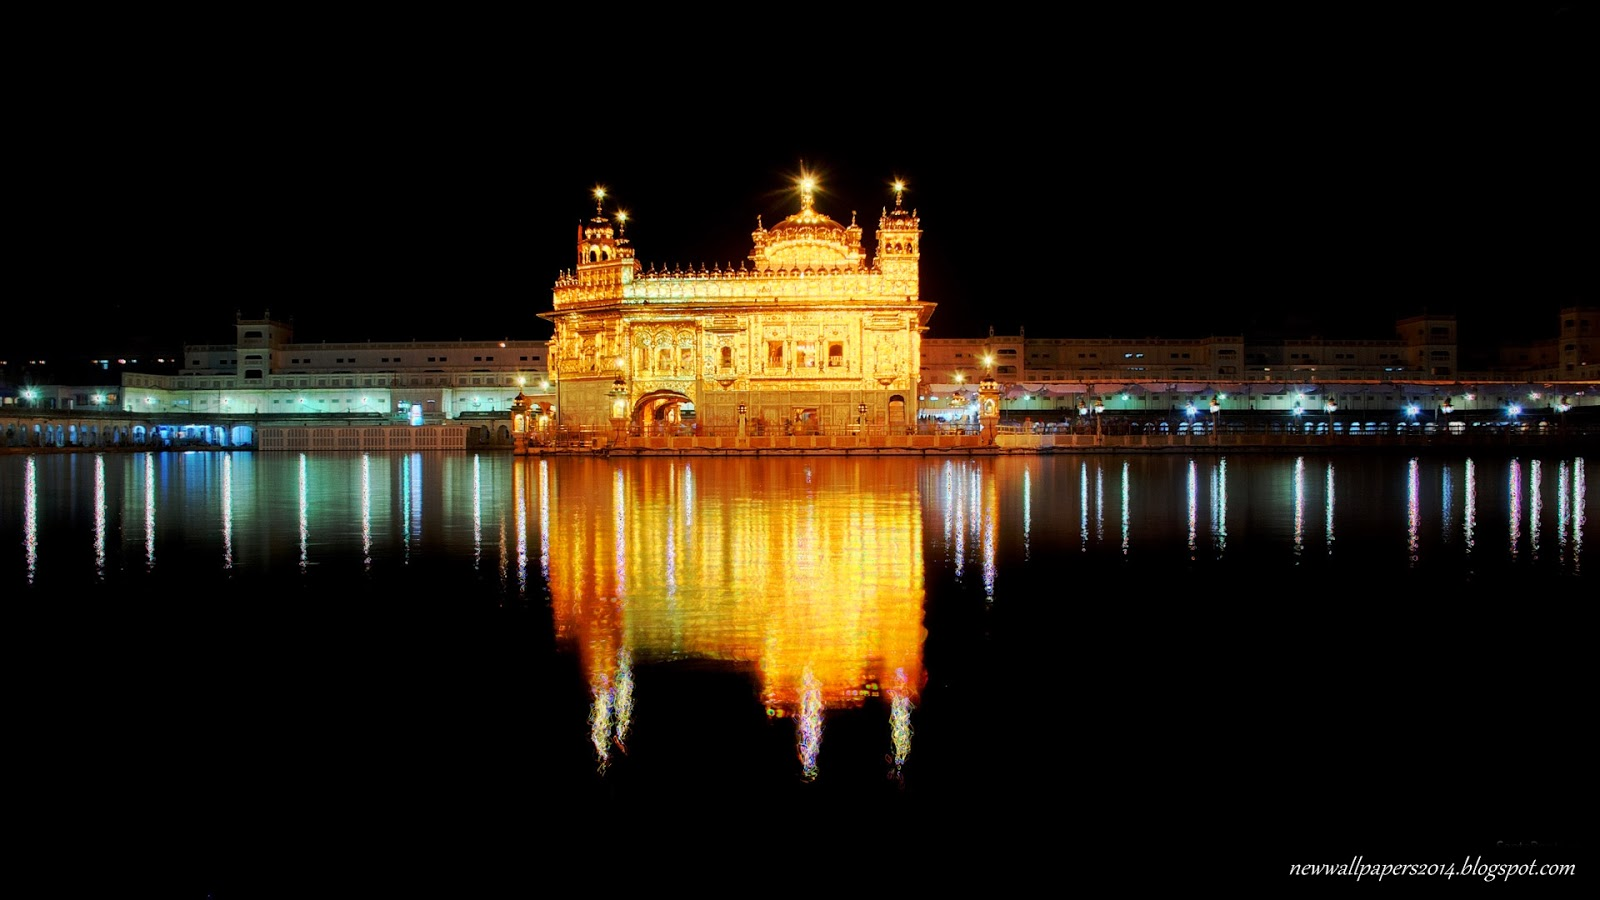 Cute Pink Girl Wallpaper The Golden Temple The Golden Temple Hd Wallpapers Hd